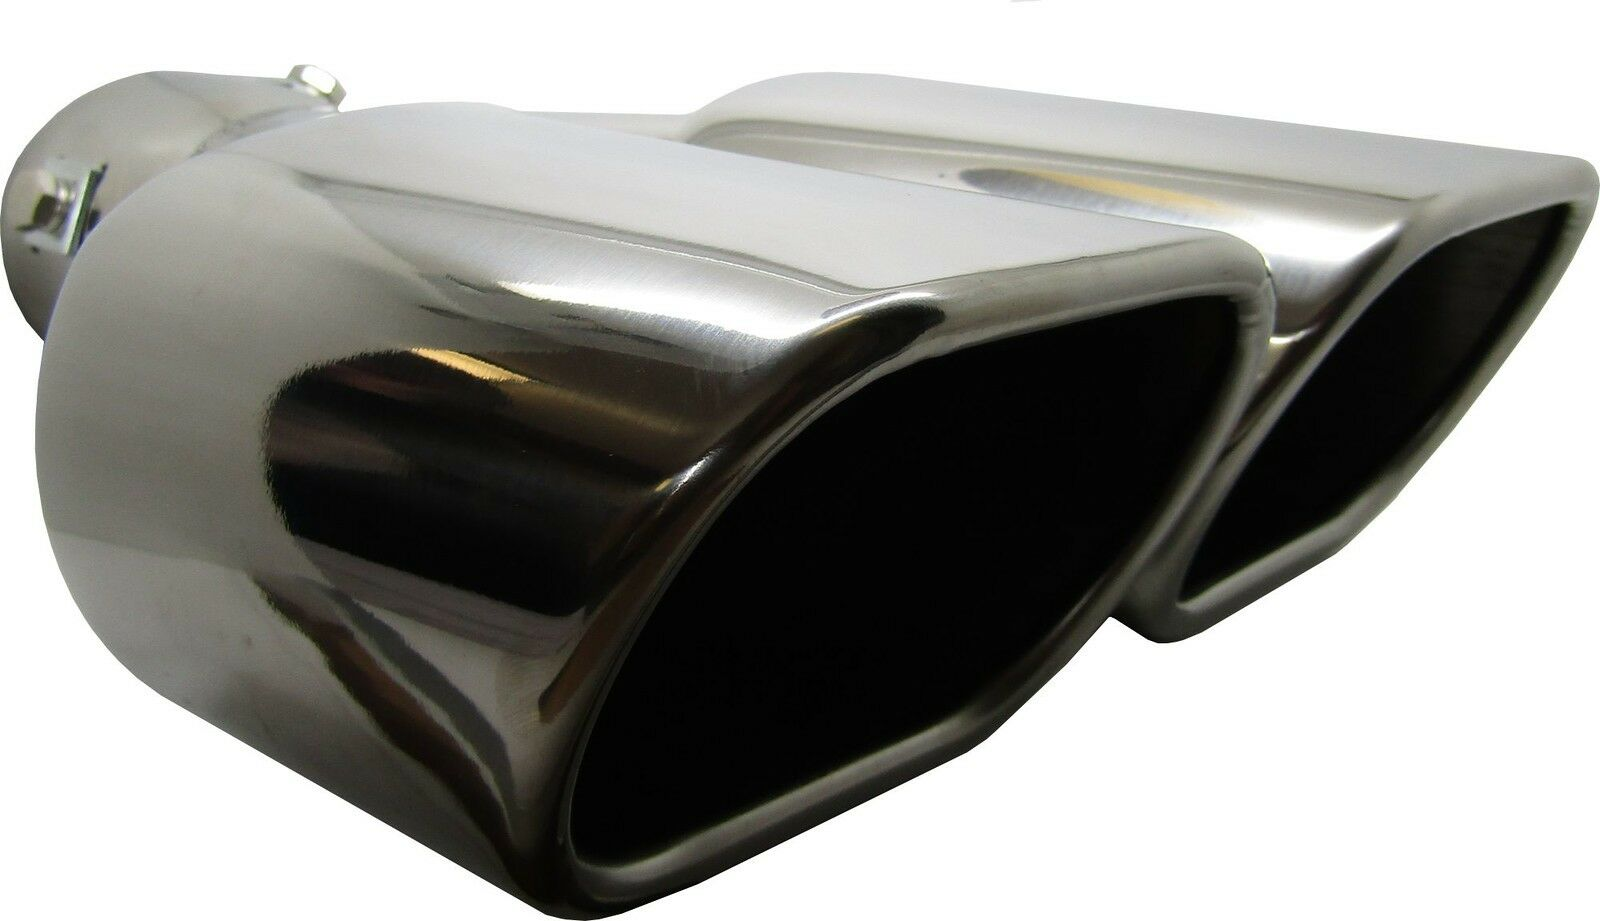 Twin Square Stainless Steel Exhaust Trim Tip Mazda CX-9 2007-2016